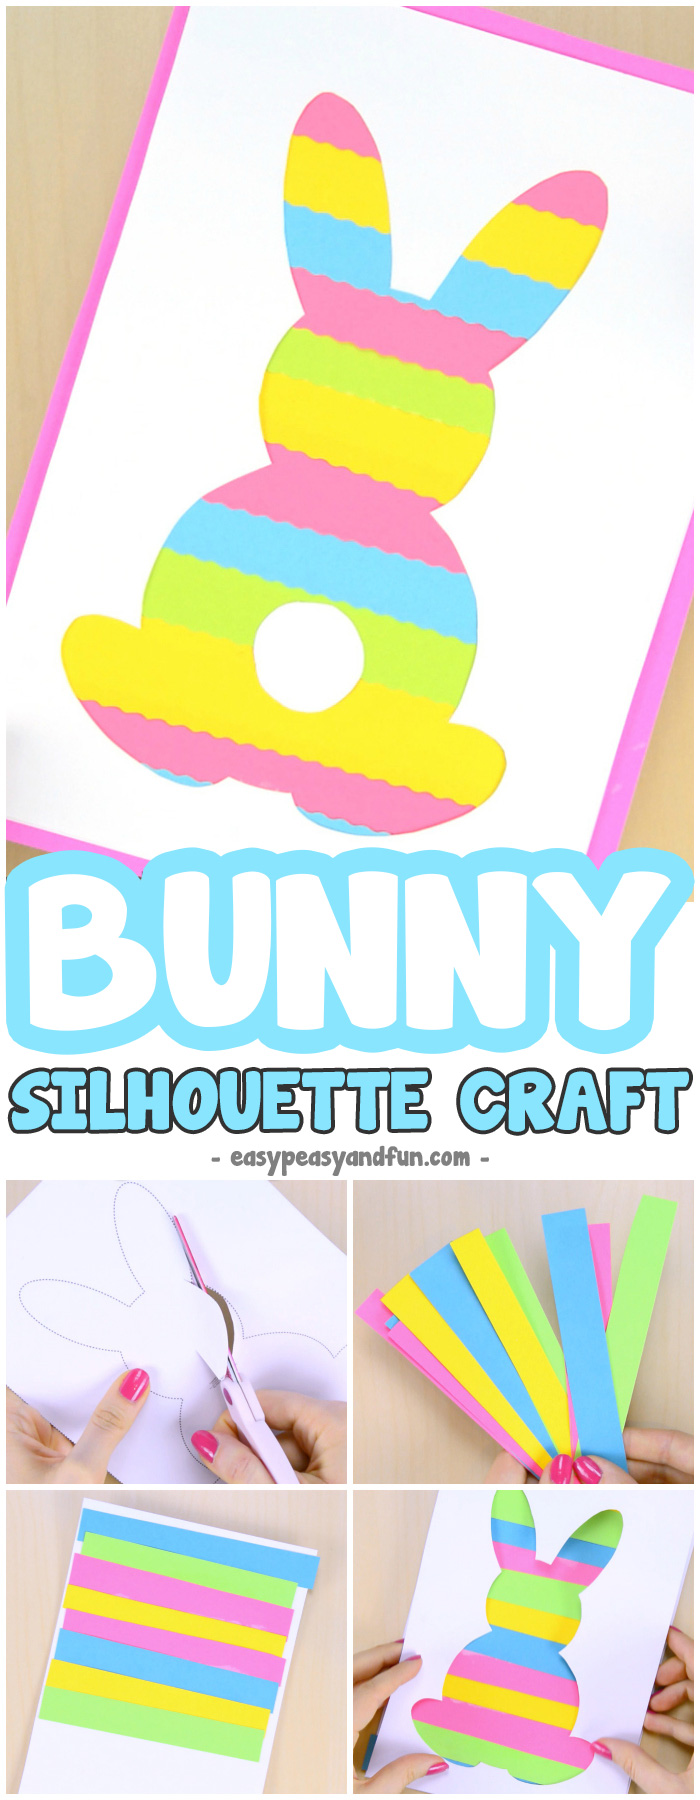 photograph about Easter Bunny Printable known as Printable Easter Silhouette Craft - Easter Bunny Template